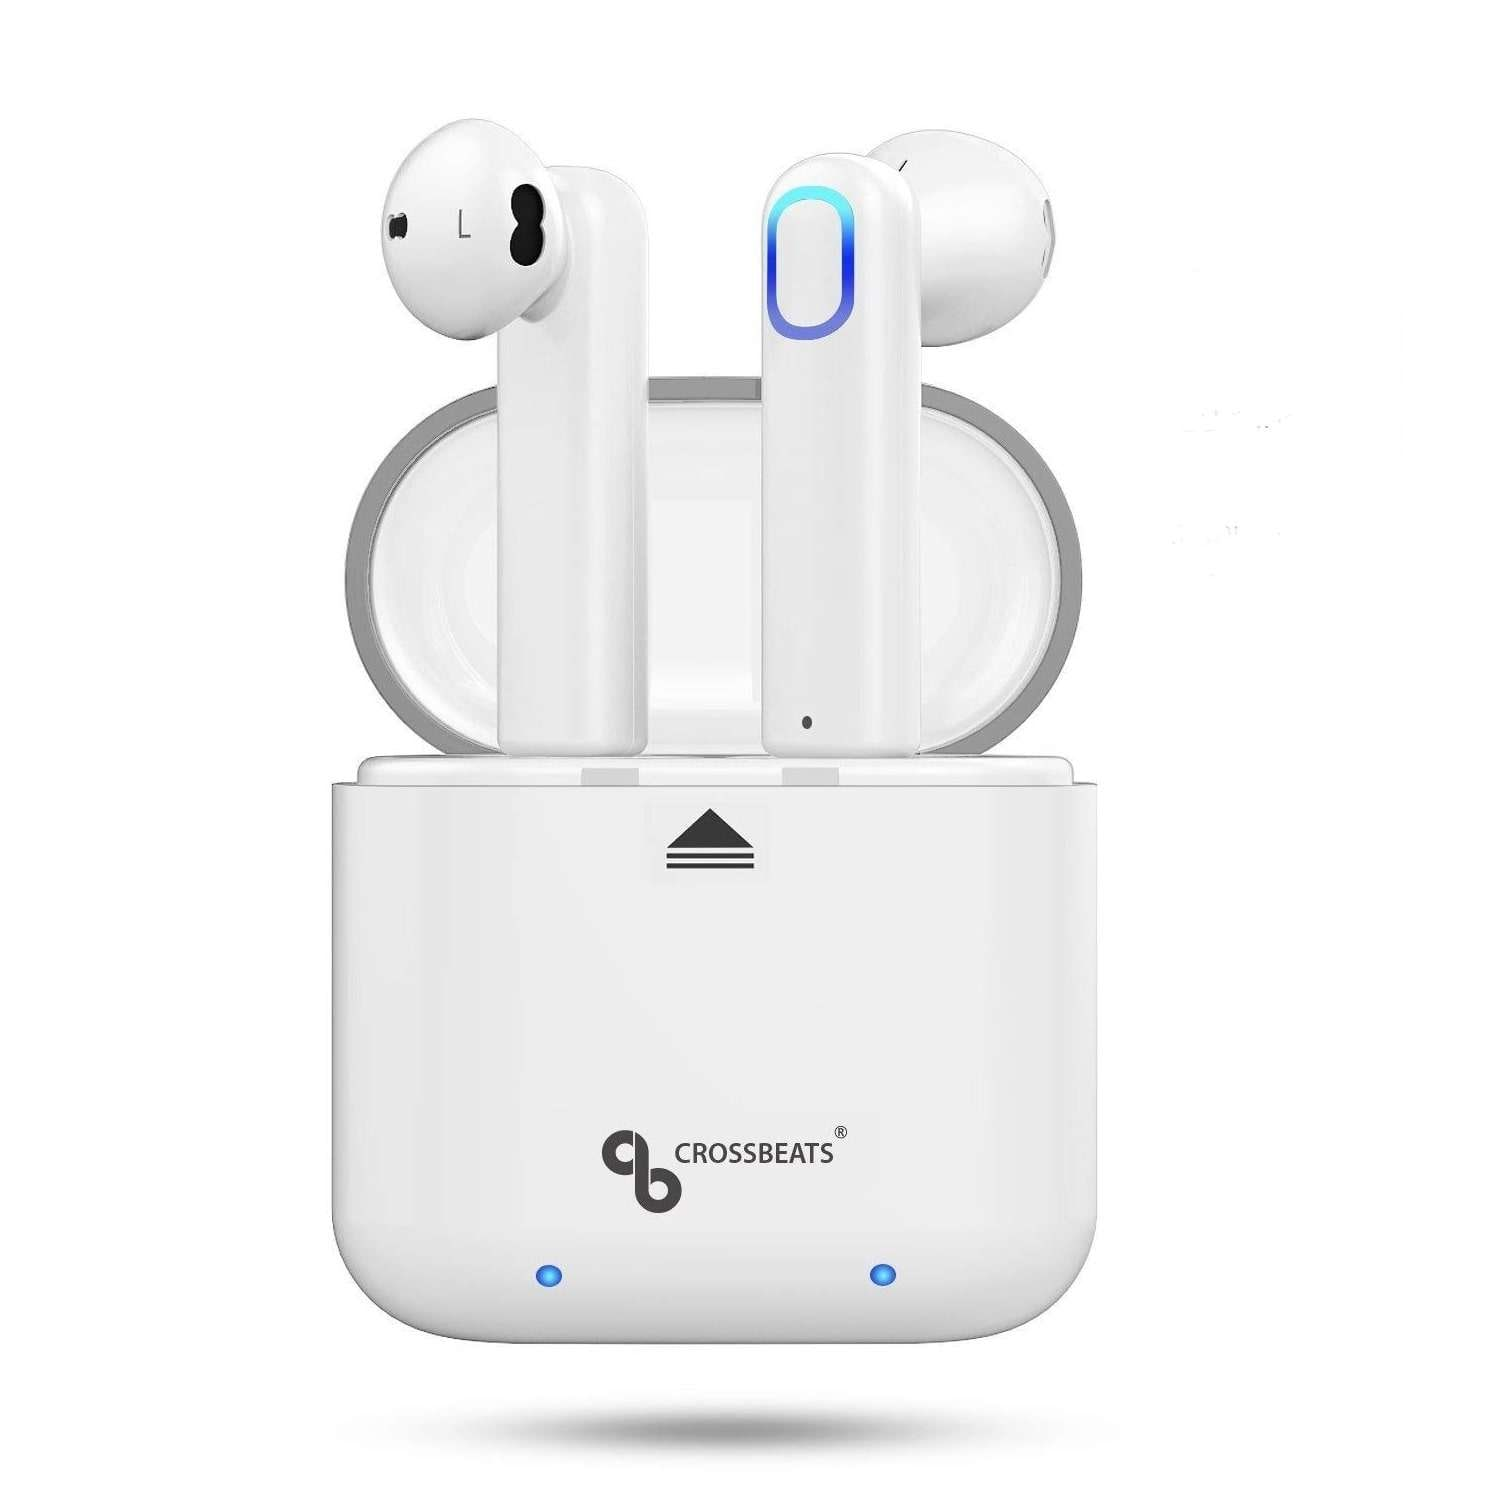 Buy Crossbeats Aero Airpods True Wireless Earbuds Dual Bluetooth Headset With Mic Features Price Reviews Online In India Justdial